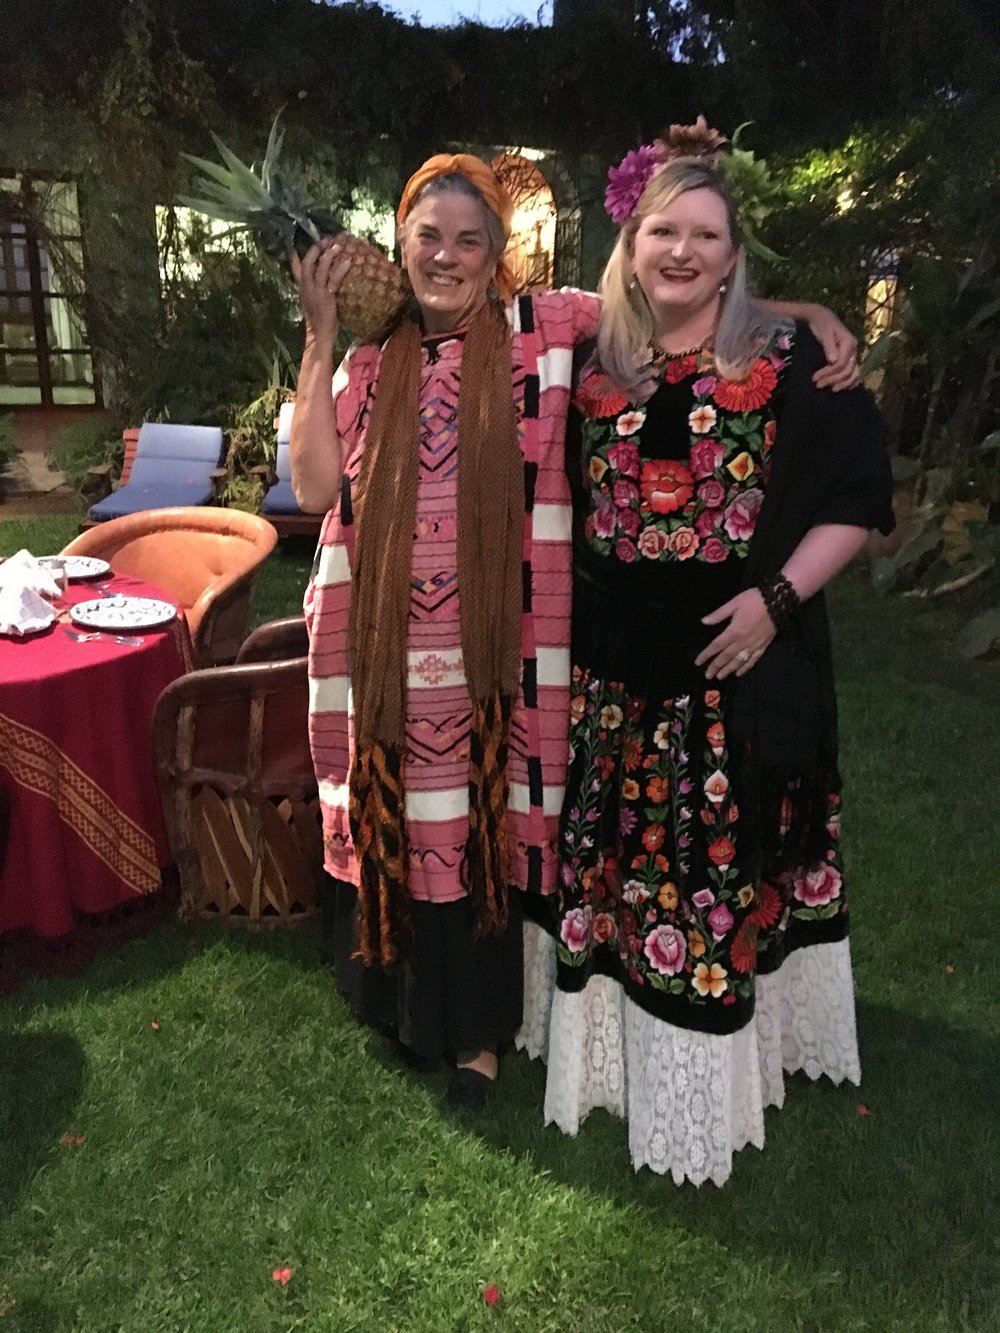 Jane, the owner of the casa and terribly funny person, is on the left, and Brooke Kyle, one of our group is on the right in her new beautiful outfit.